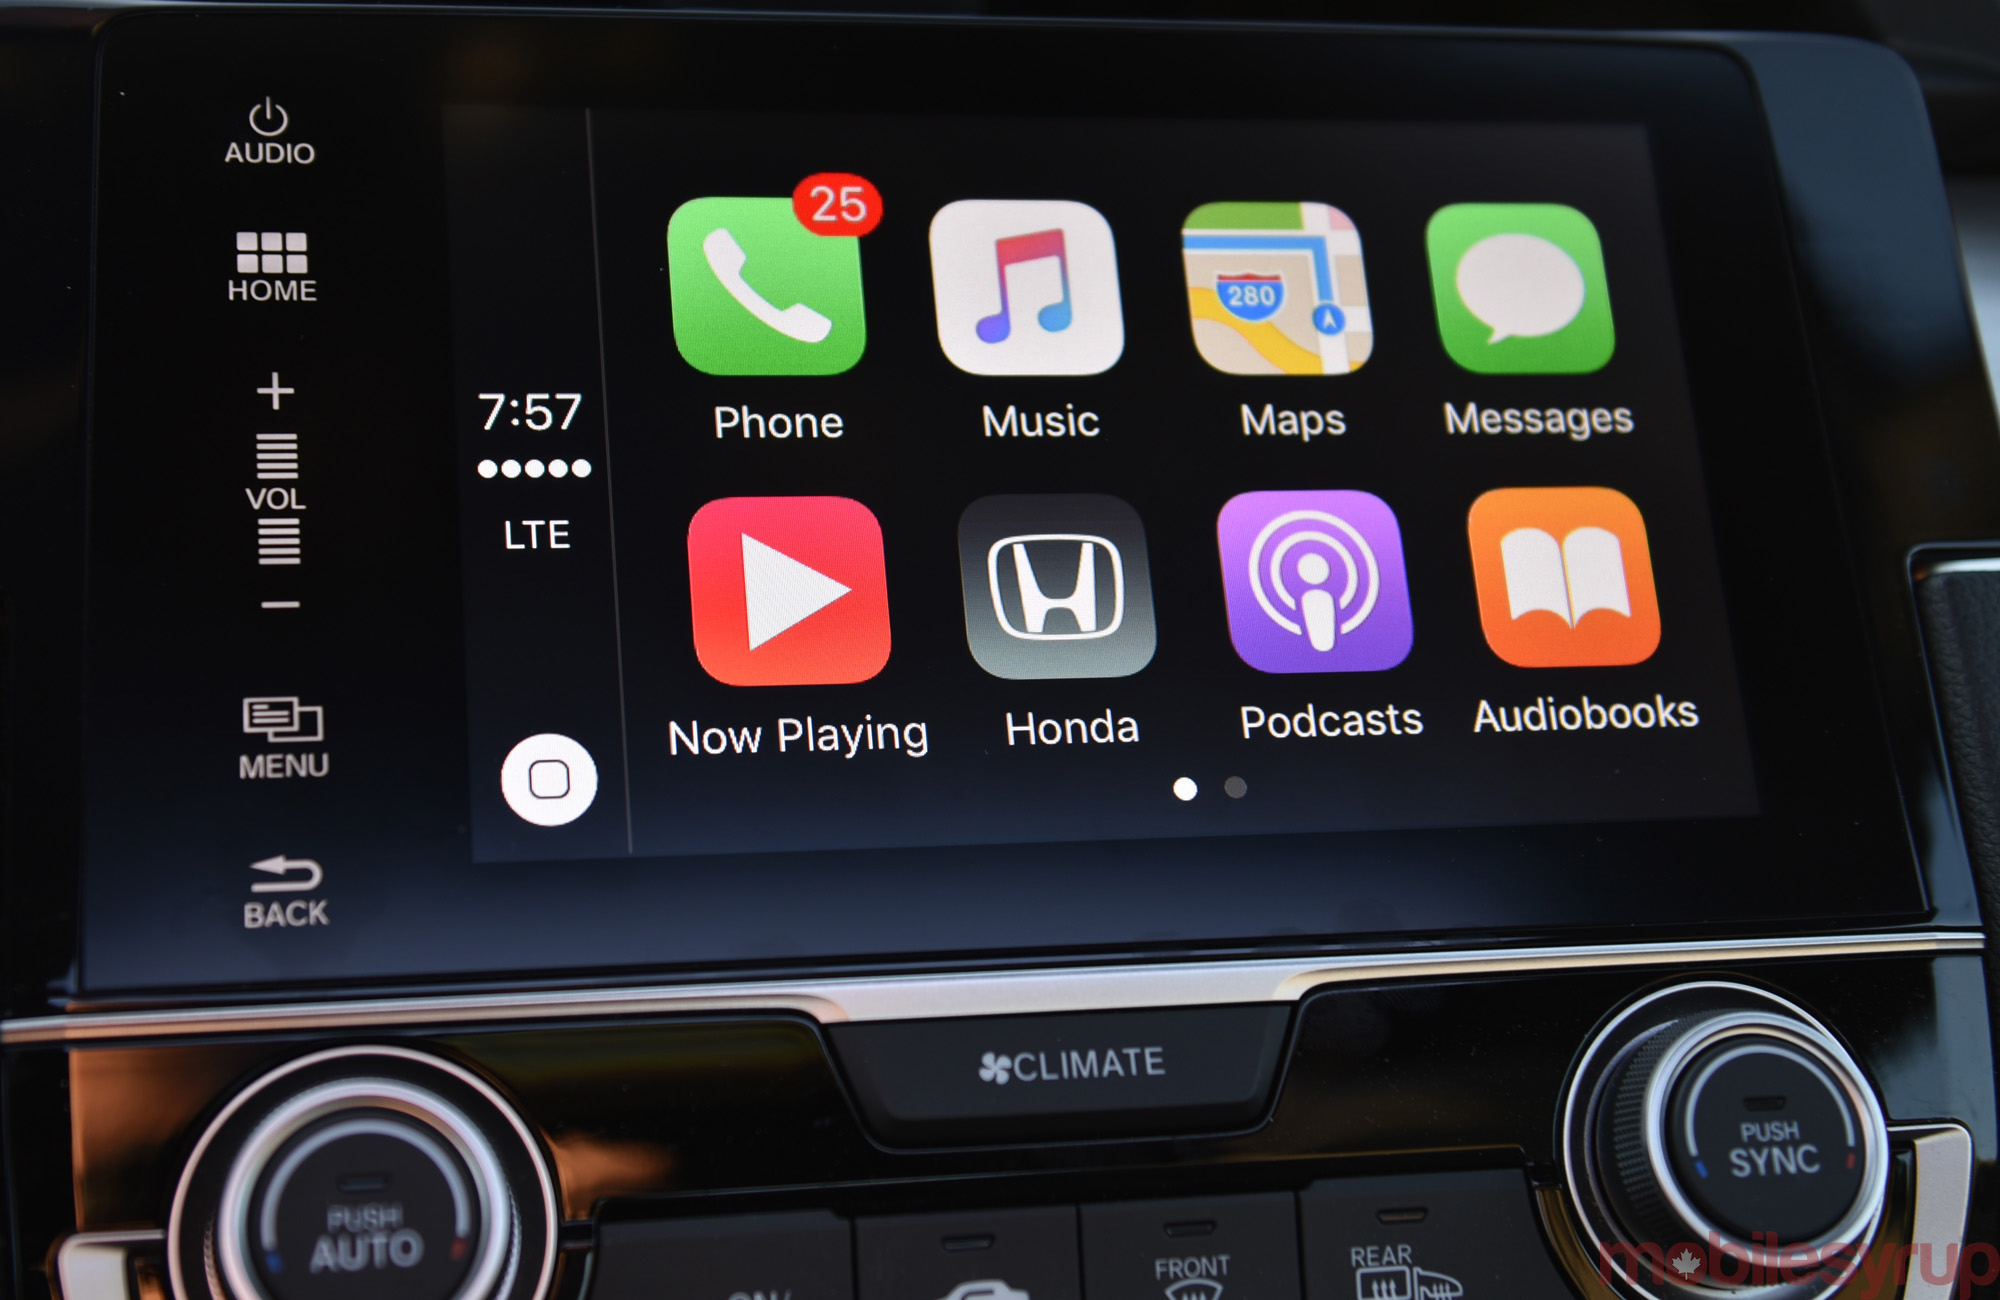 2016 Honda Civic infotainment review: CarPlay and Android